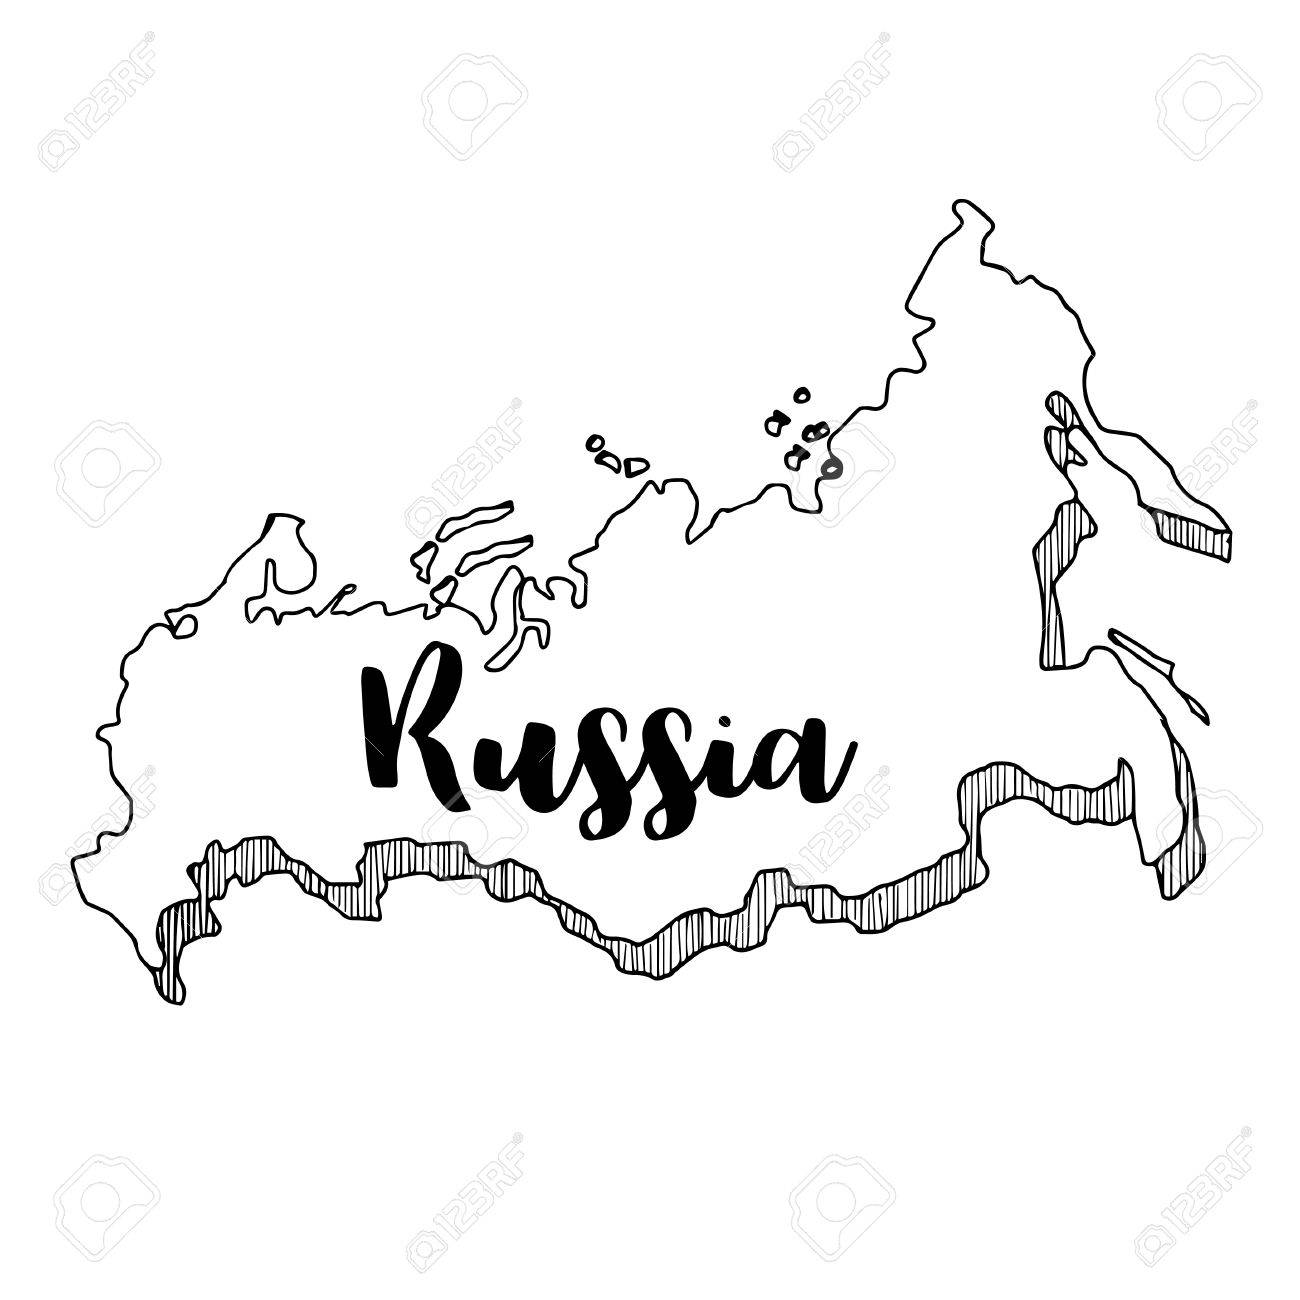 Russia Map Drawing on map of san francisco, map of geneva, map of russia and neighboring countries, map of afghanistan and surrounding countries, map of fribourg, map of la chaux-de-fonds, map of switzerland, map of st. moritz, map of chernobyl, map of stuttgart, map of winterthur, map of europe and middle east, map of basel, map of asia, map of swiss alps, map of rothenburg, map of cambridge, map of tyrol, map of world, map of atlanta,